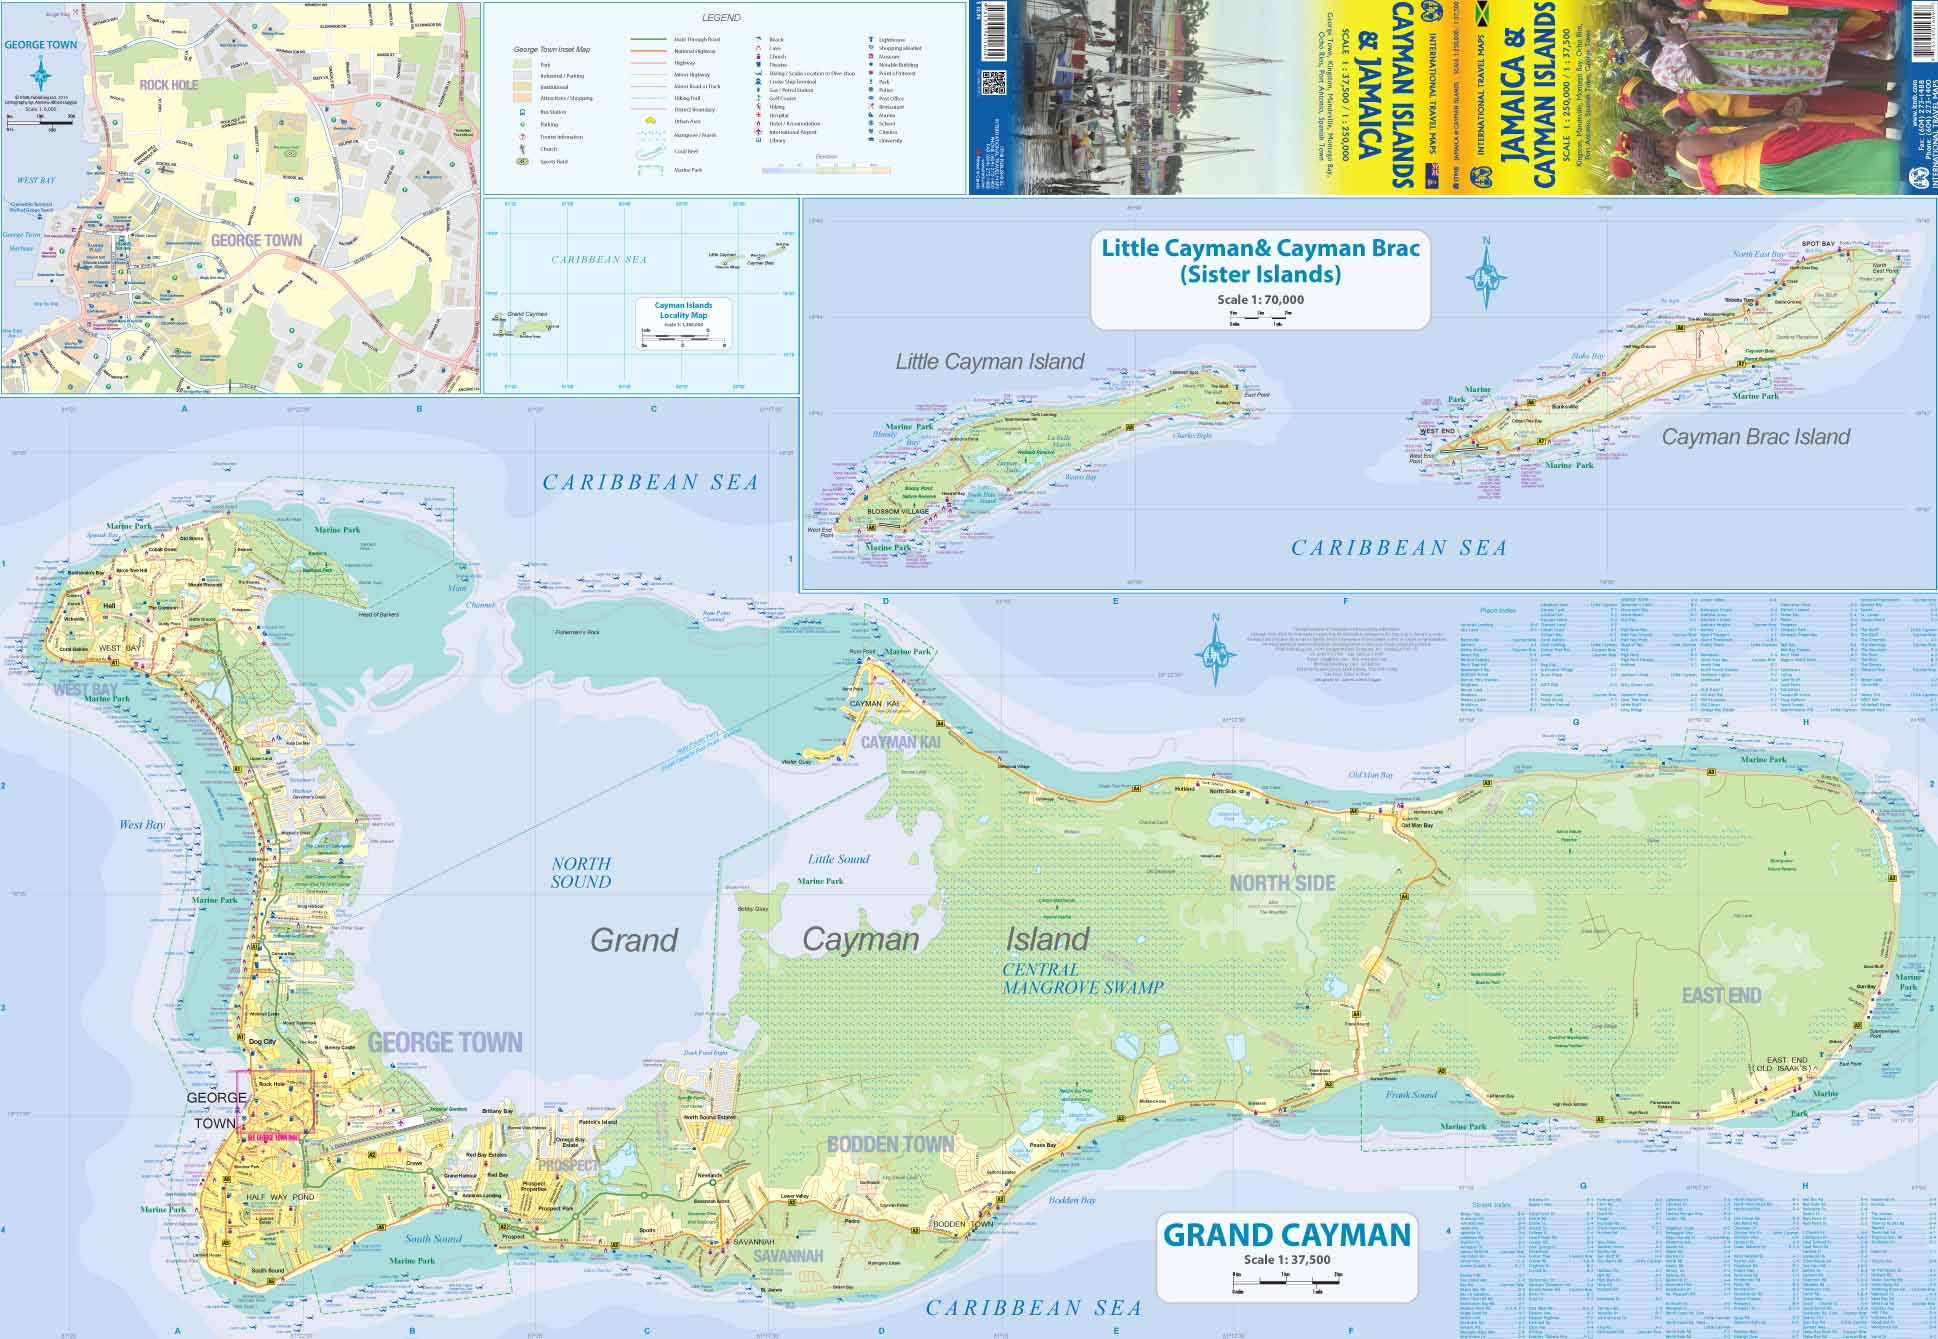 Maps For Travel City Maps Road Maps Guides Globes Topographic - Cayman islands cities map